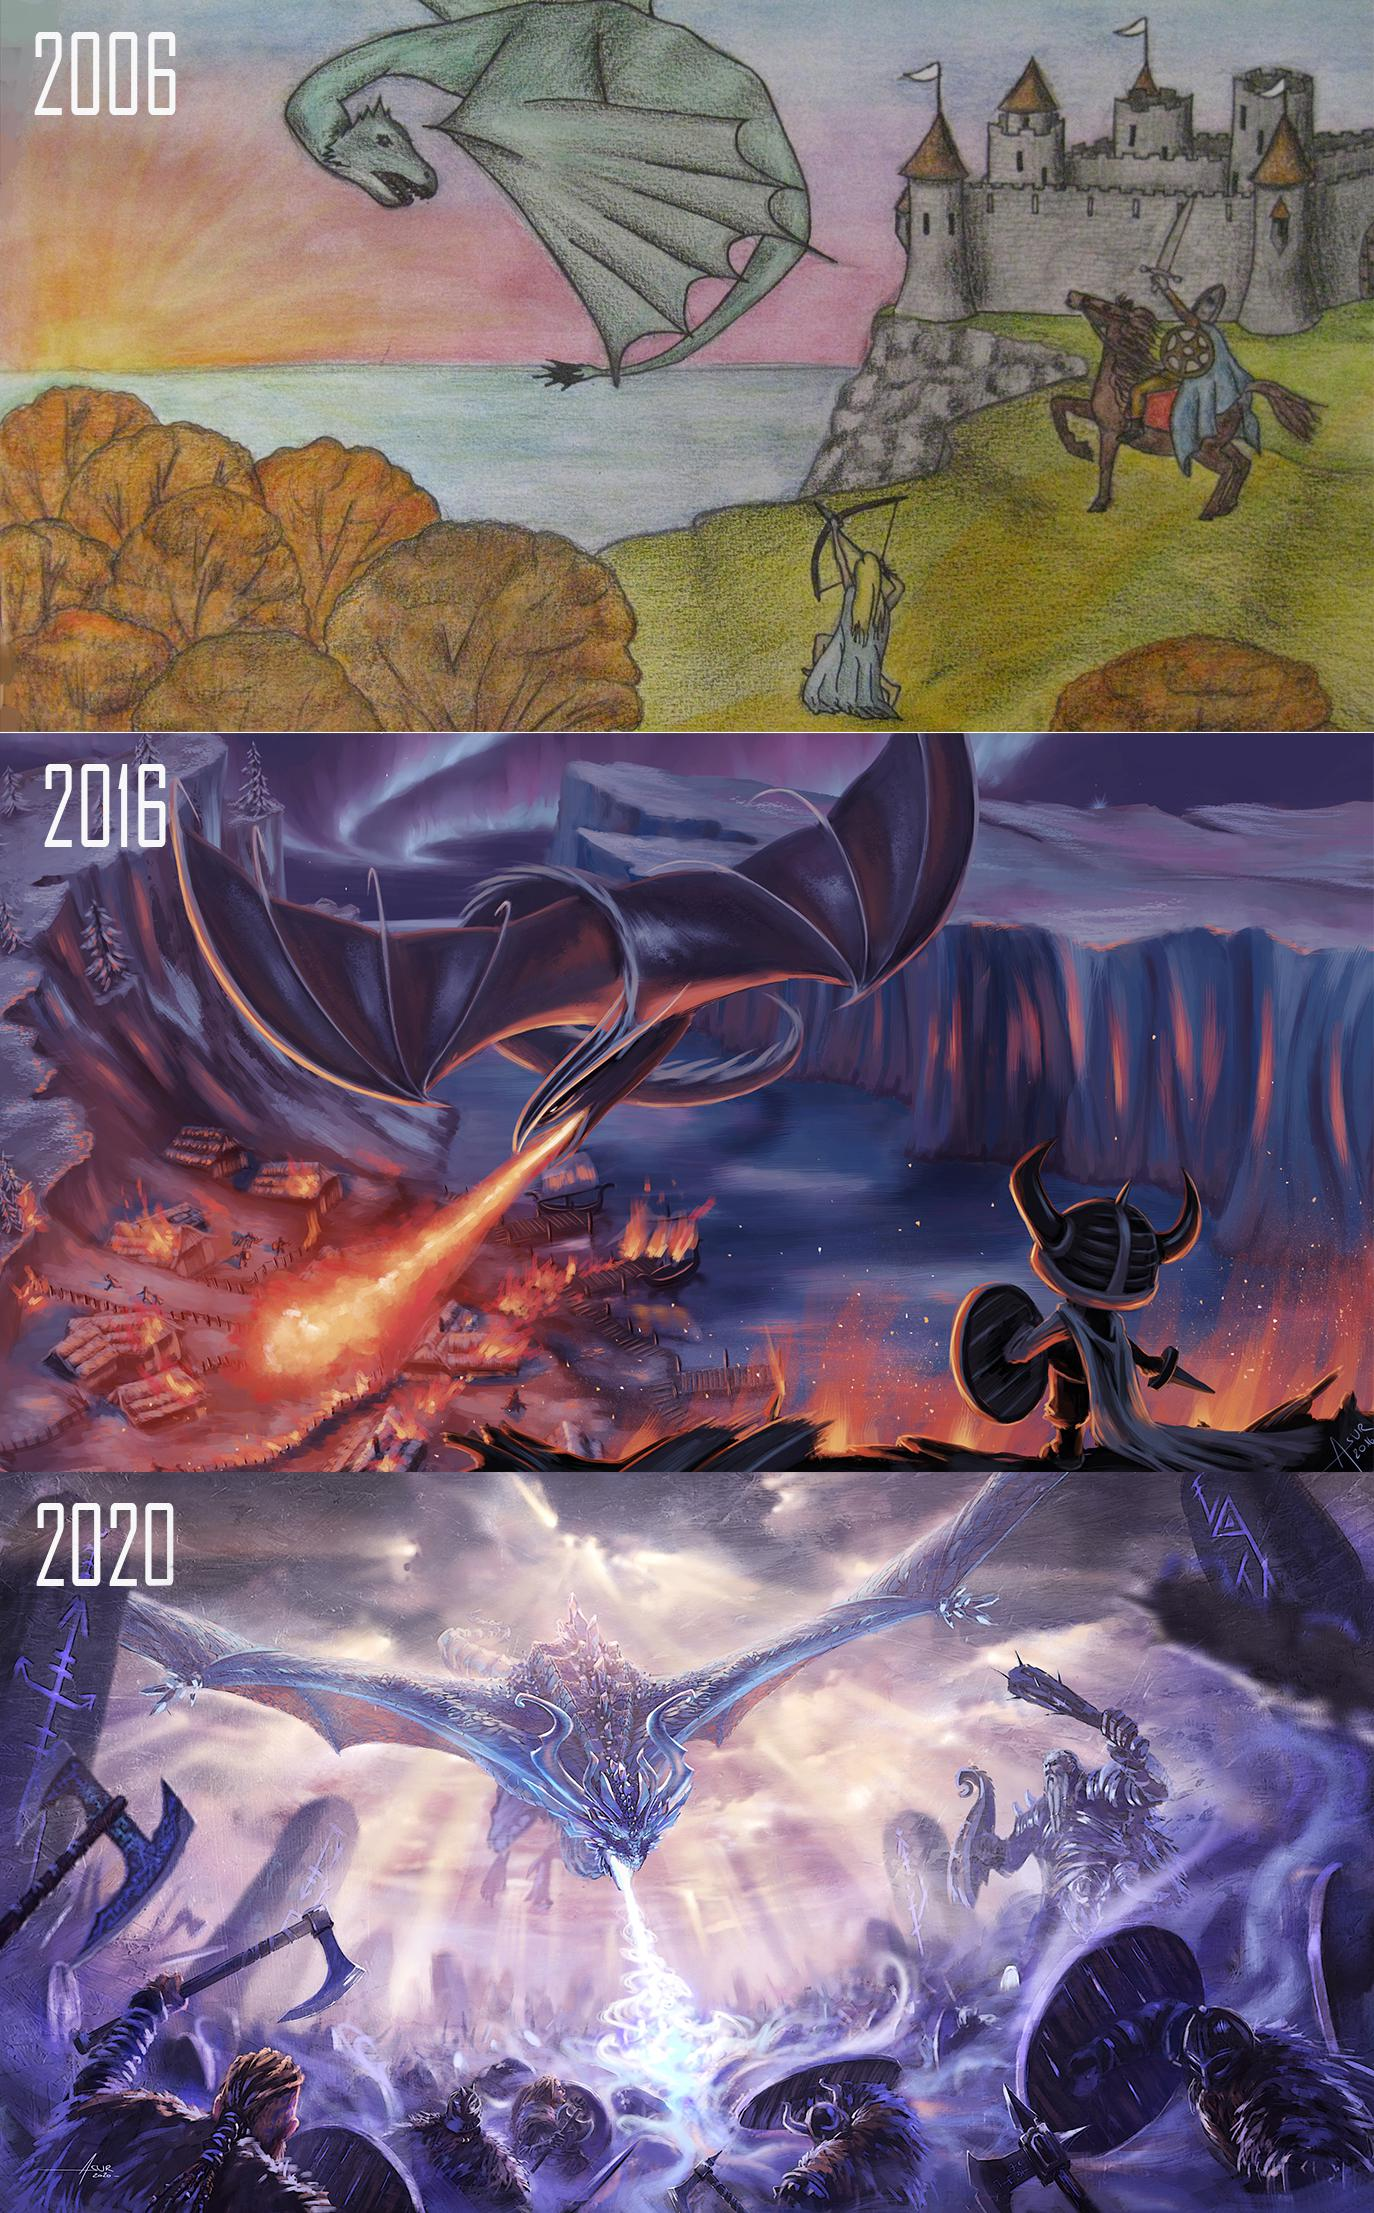 [Image] In 2006 my boyfriend asked me an epic painting for his birthday. 10 years later I decided it was time to finally do what I really wanted. I quit my old job and started to learn how tho paint. I never stoped since then! And I painted him updated versions over the years. :)